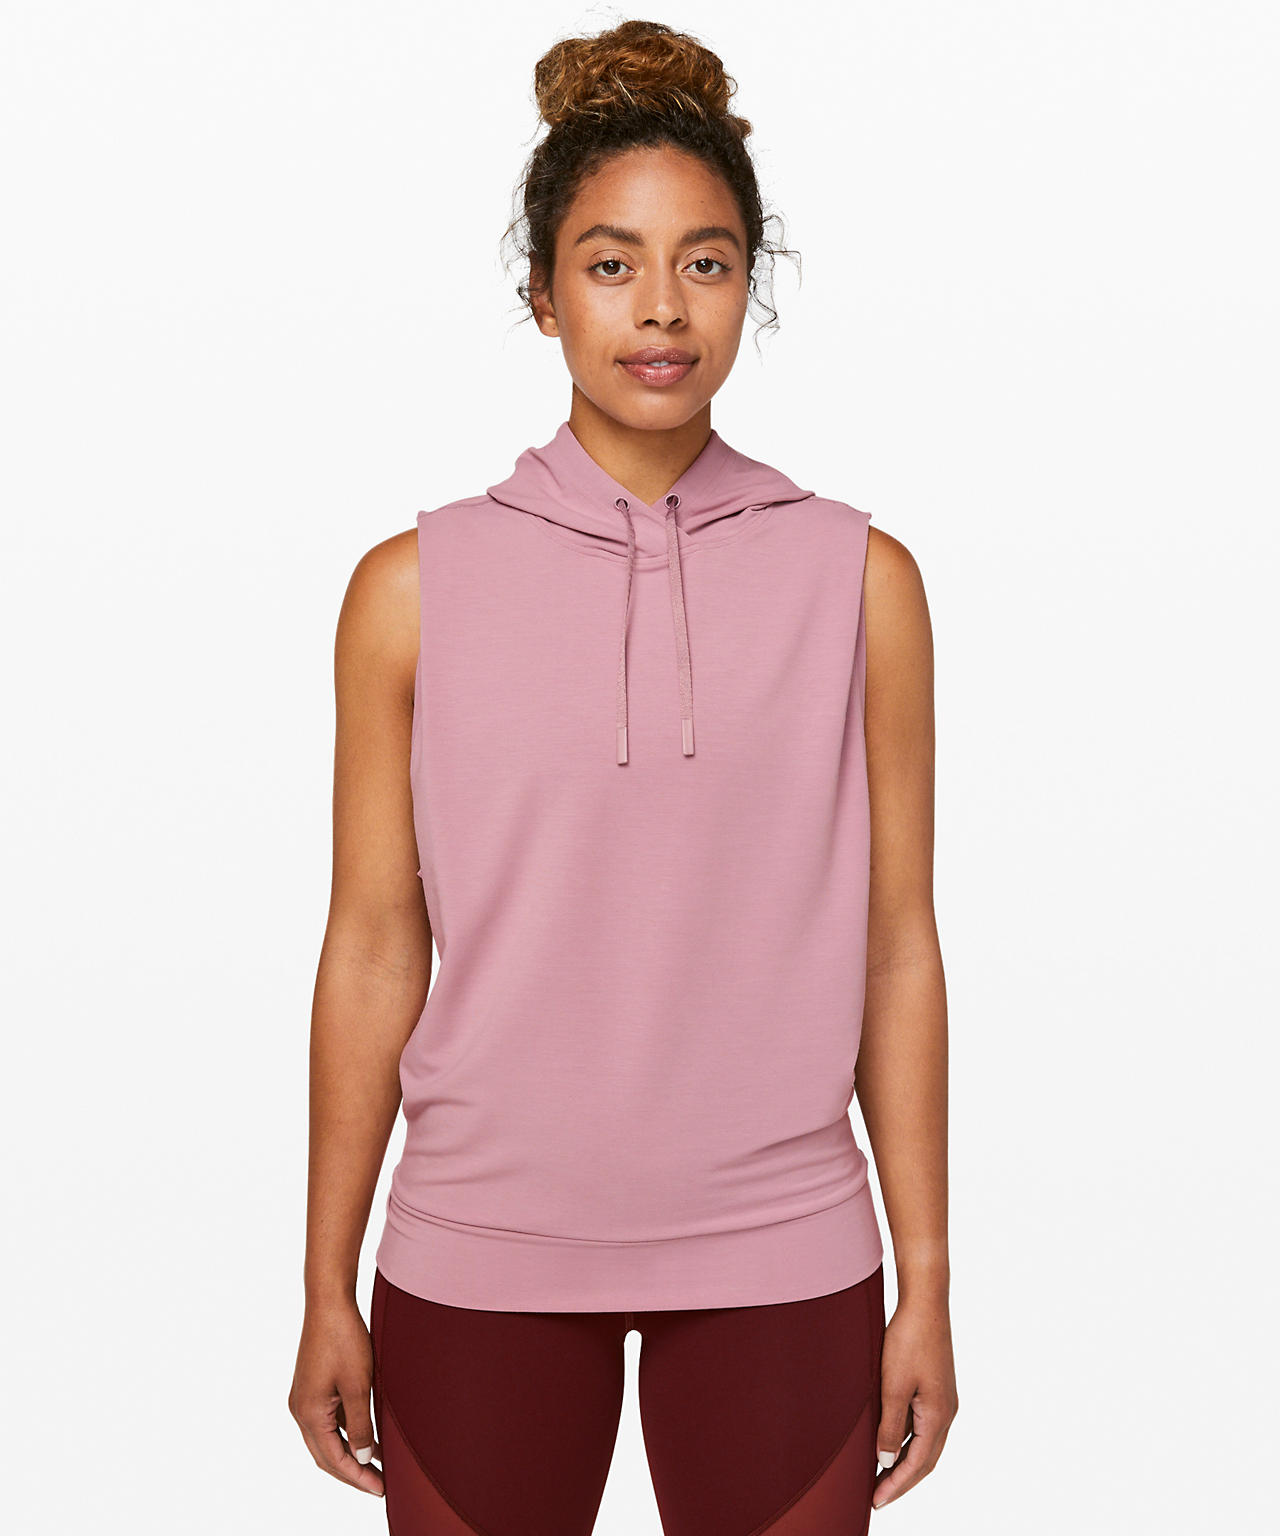 Stronger as one sleeveless hoodie